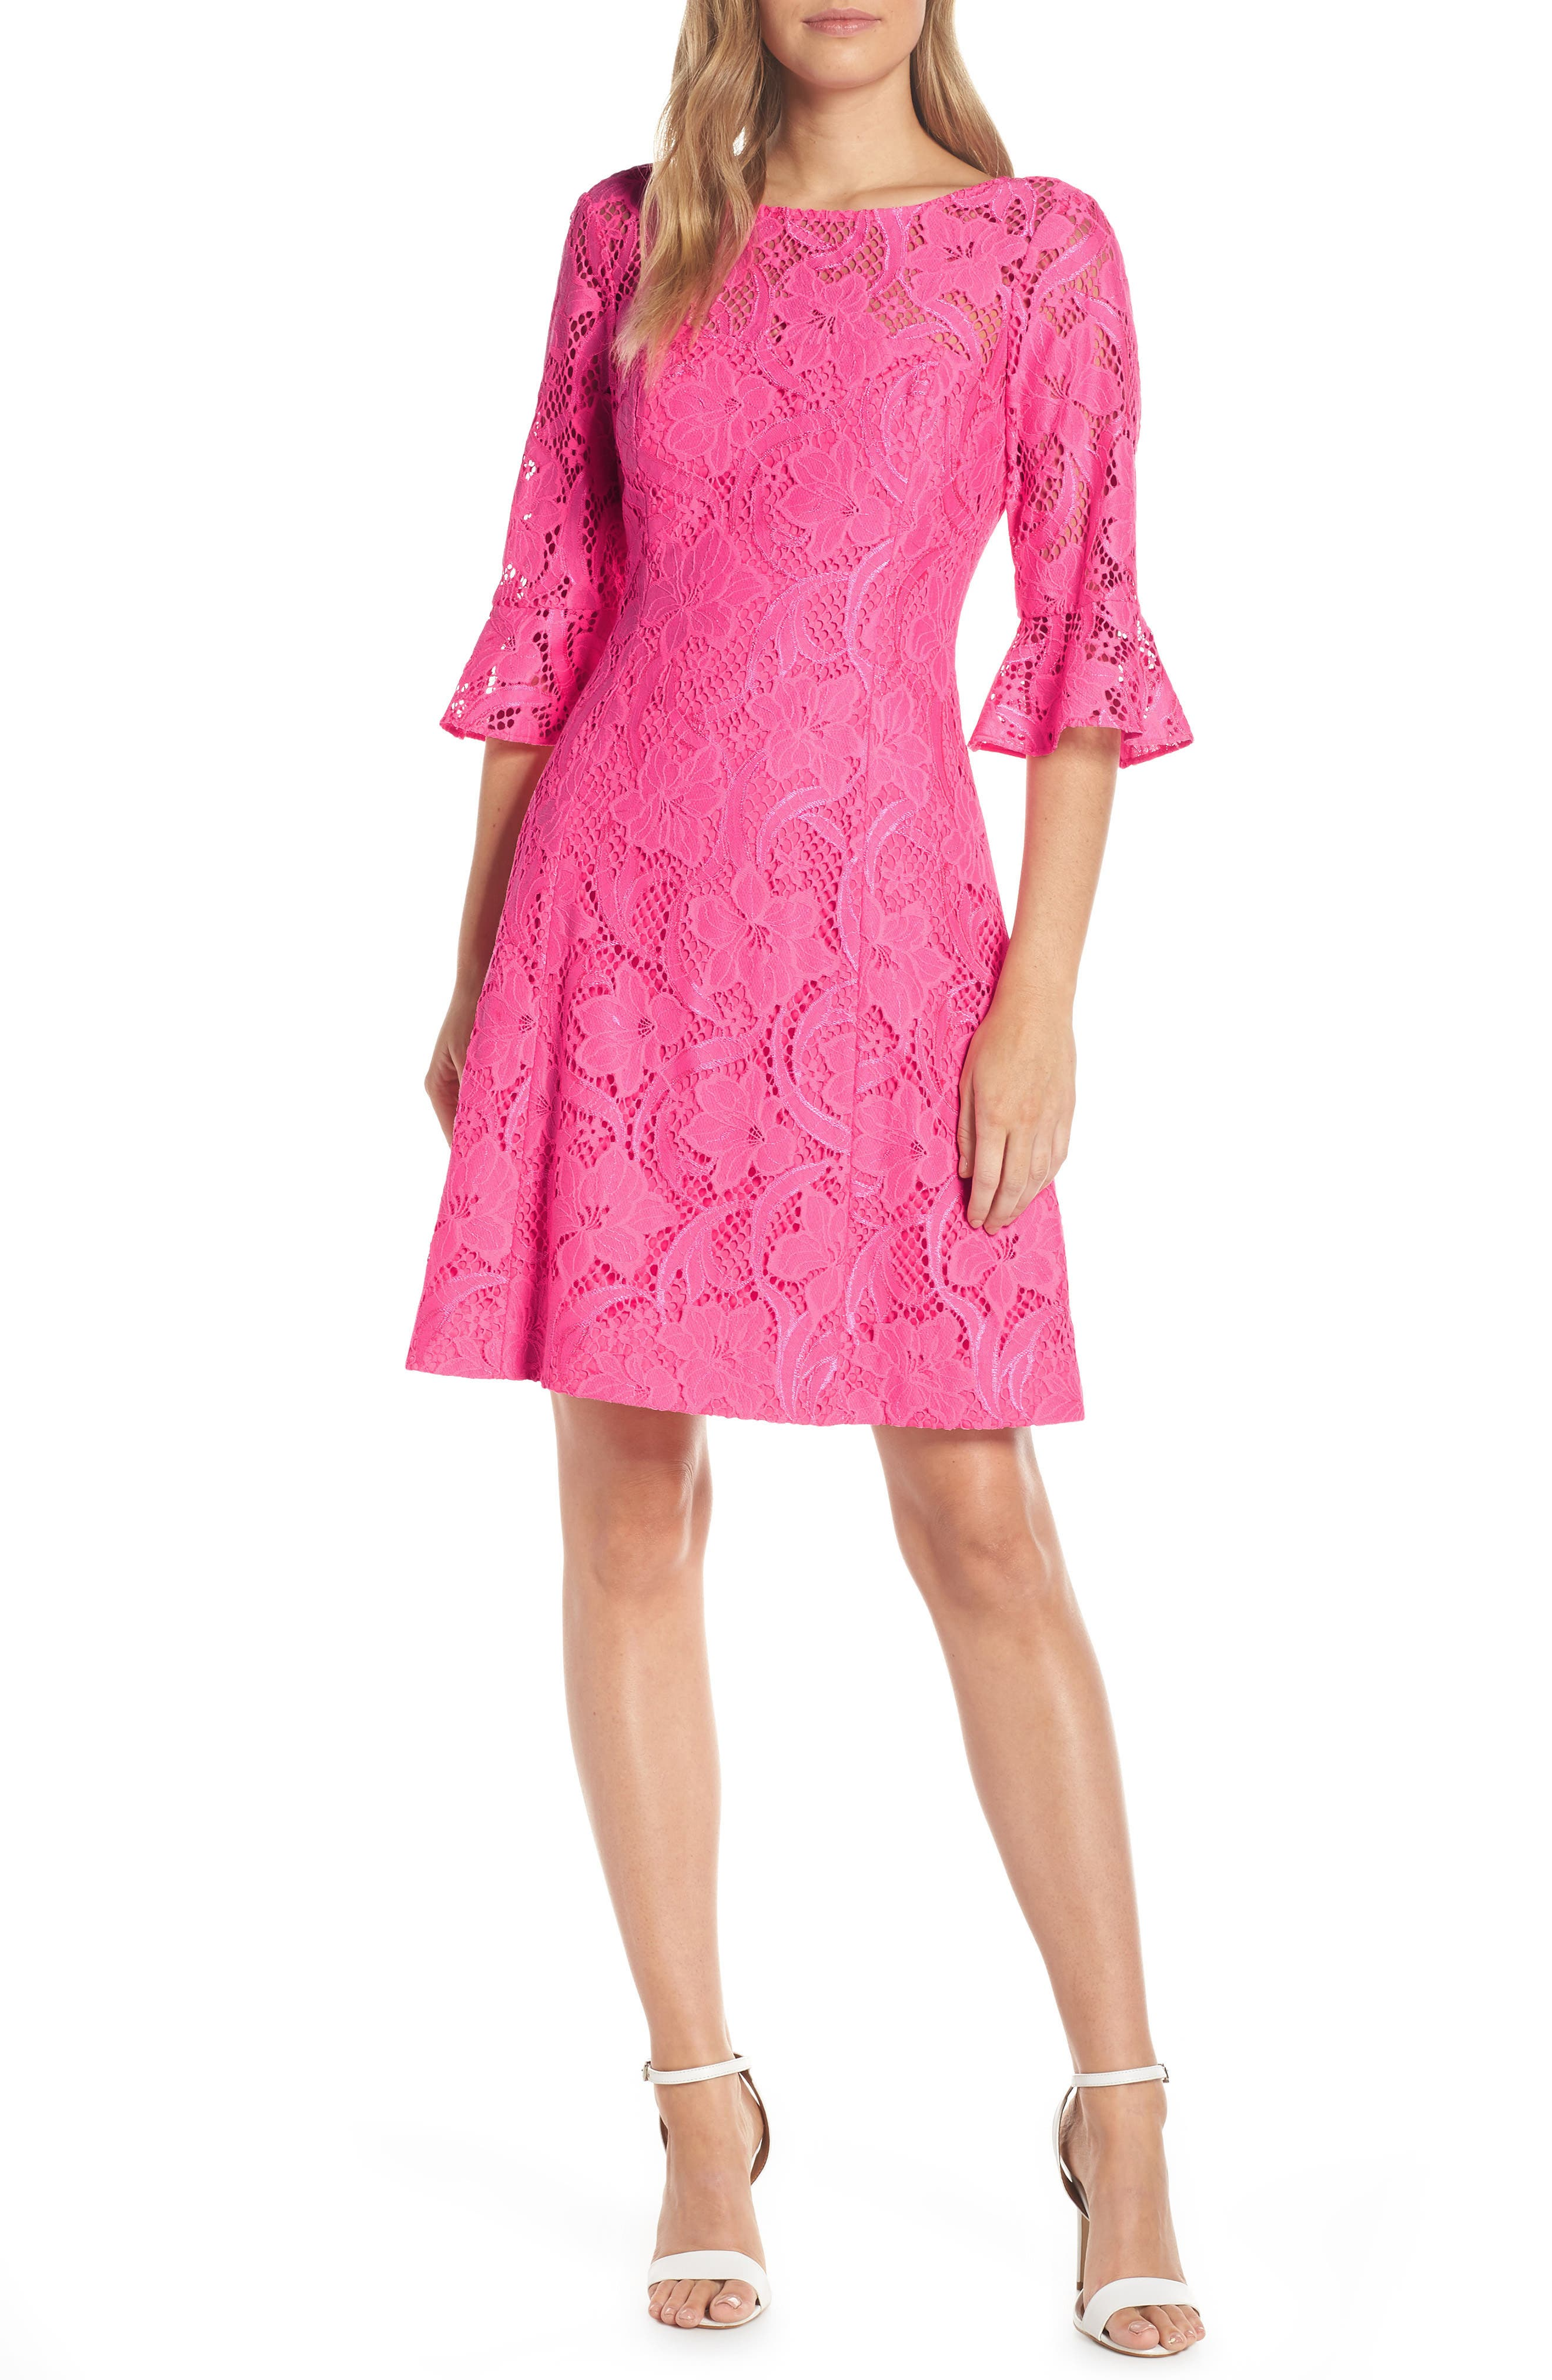 Lilly Pulitzer Allyson Lace Fit & Flare Dress, Pink